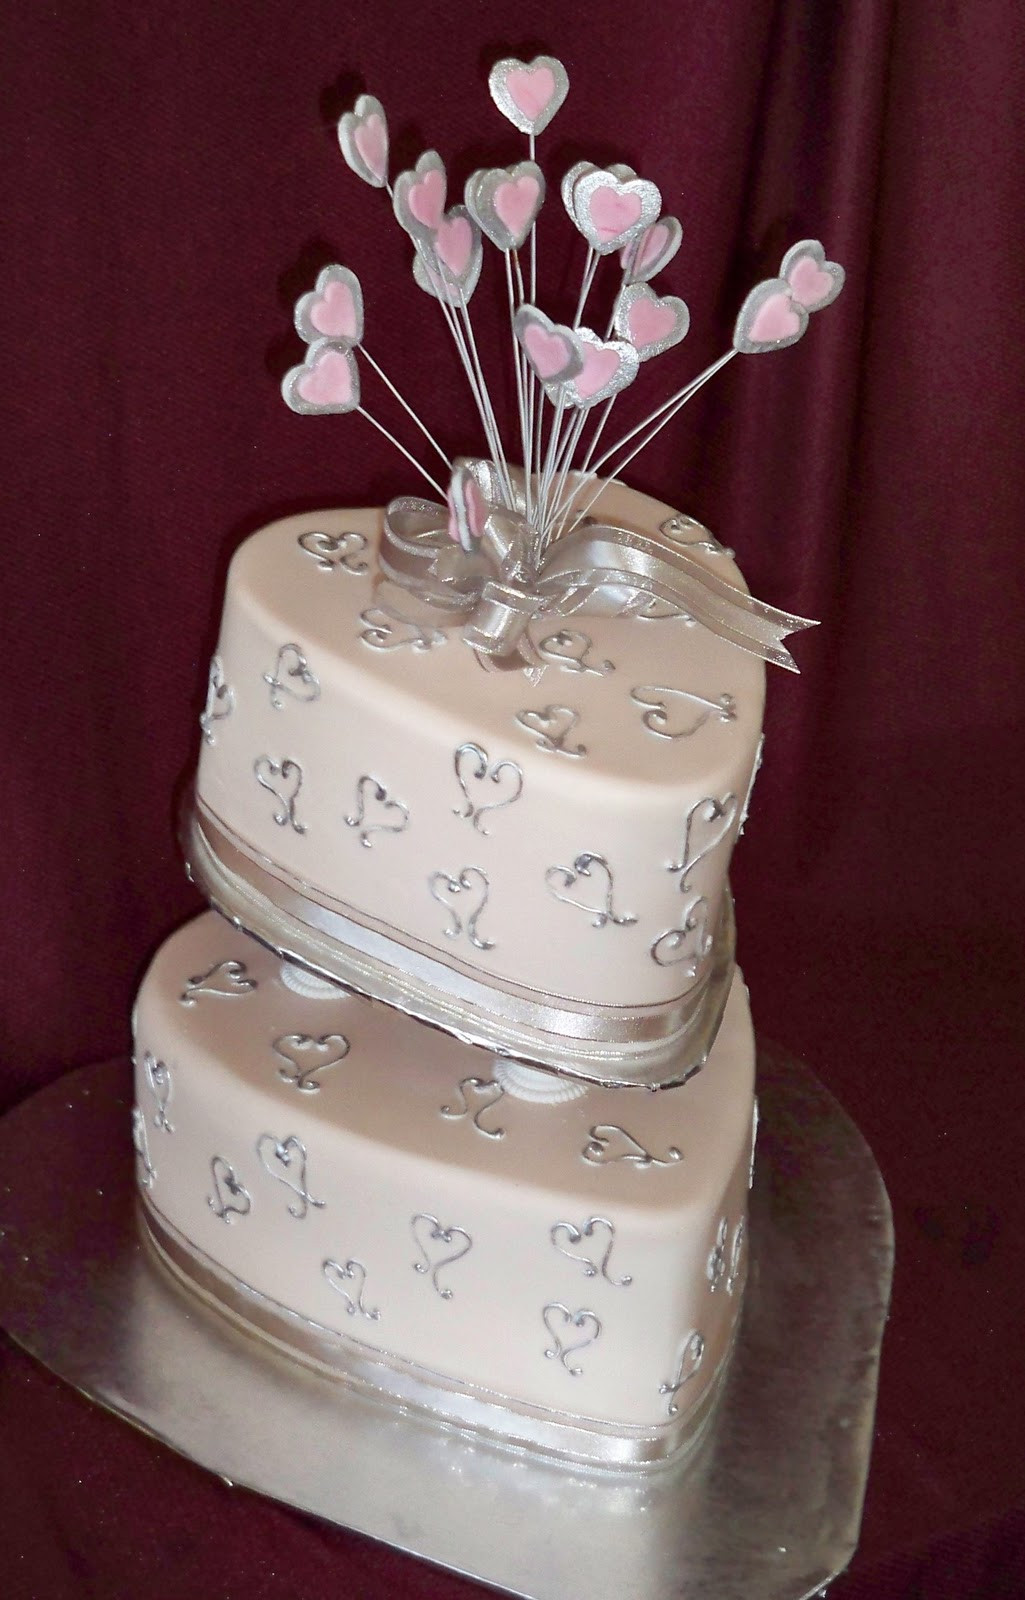 Wedding Cakes With Hearts  love heart wedding cakes